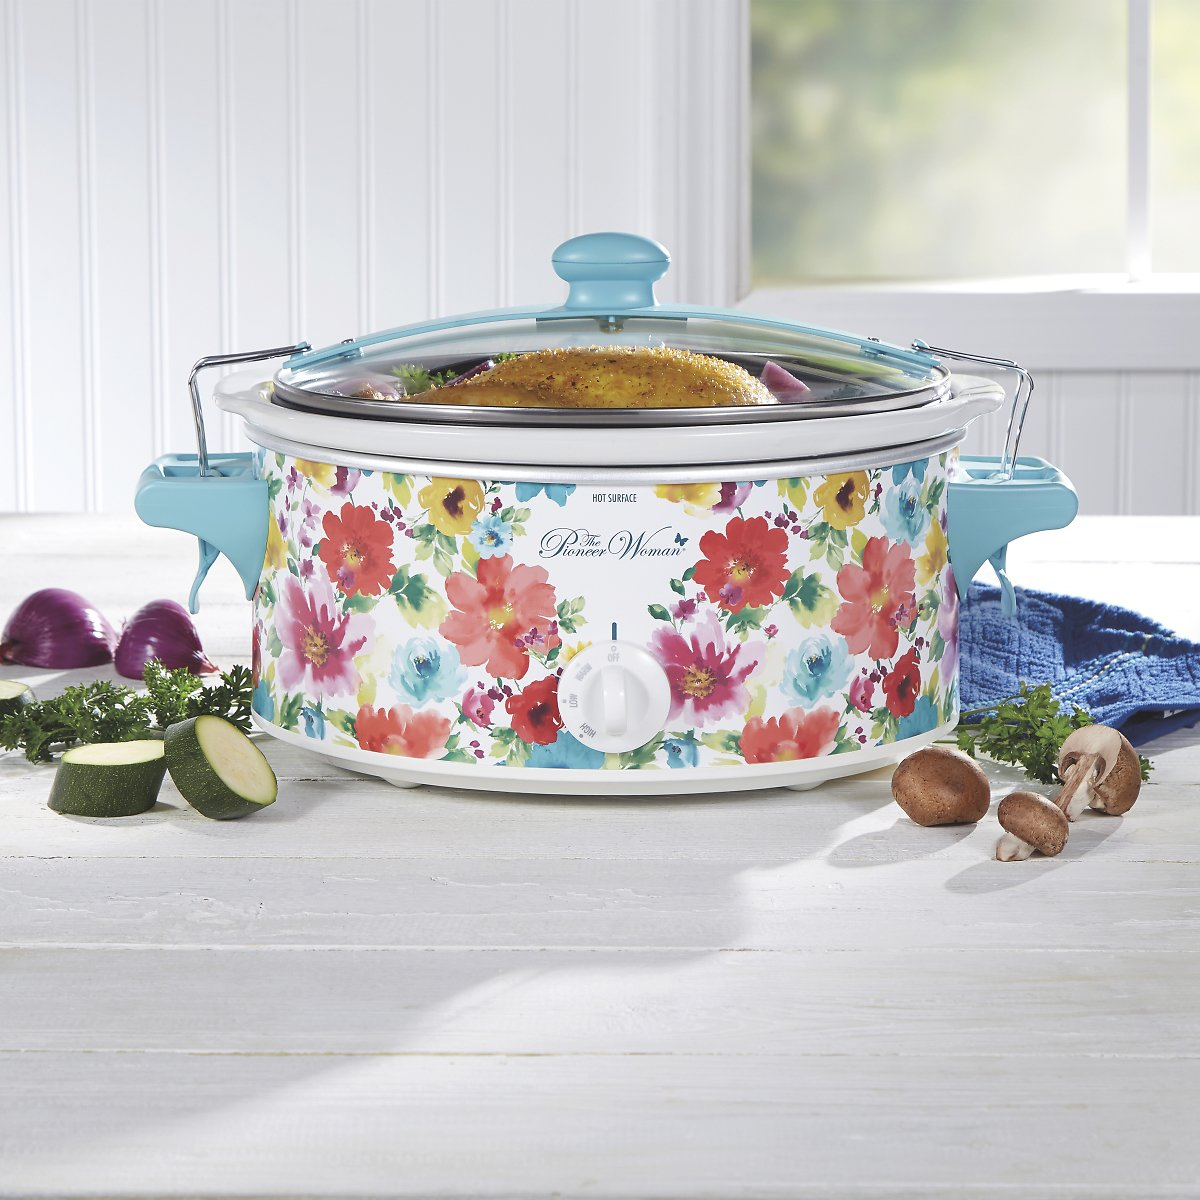 The Pioneer Woman Breezy Blossom 6 Quart Portable Slow Cooker